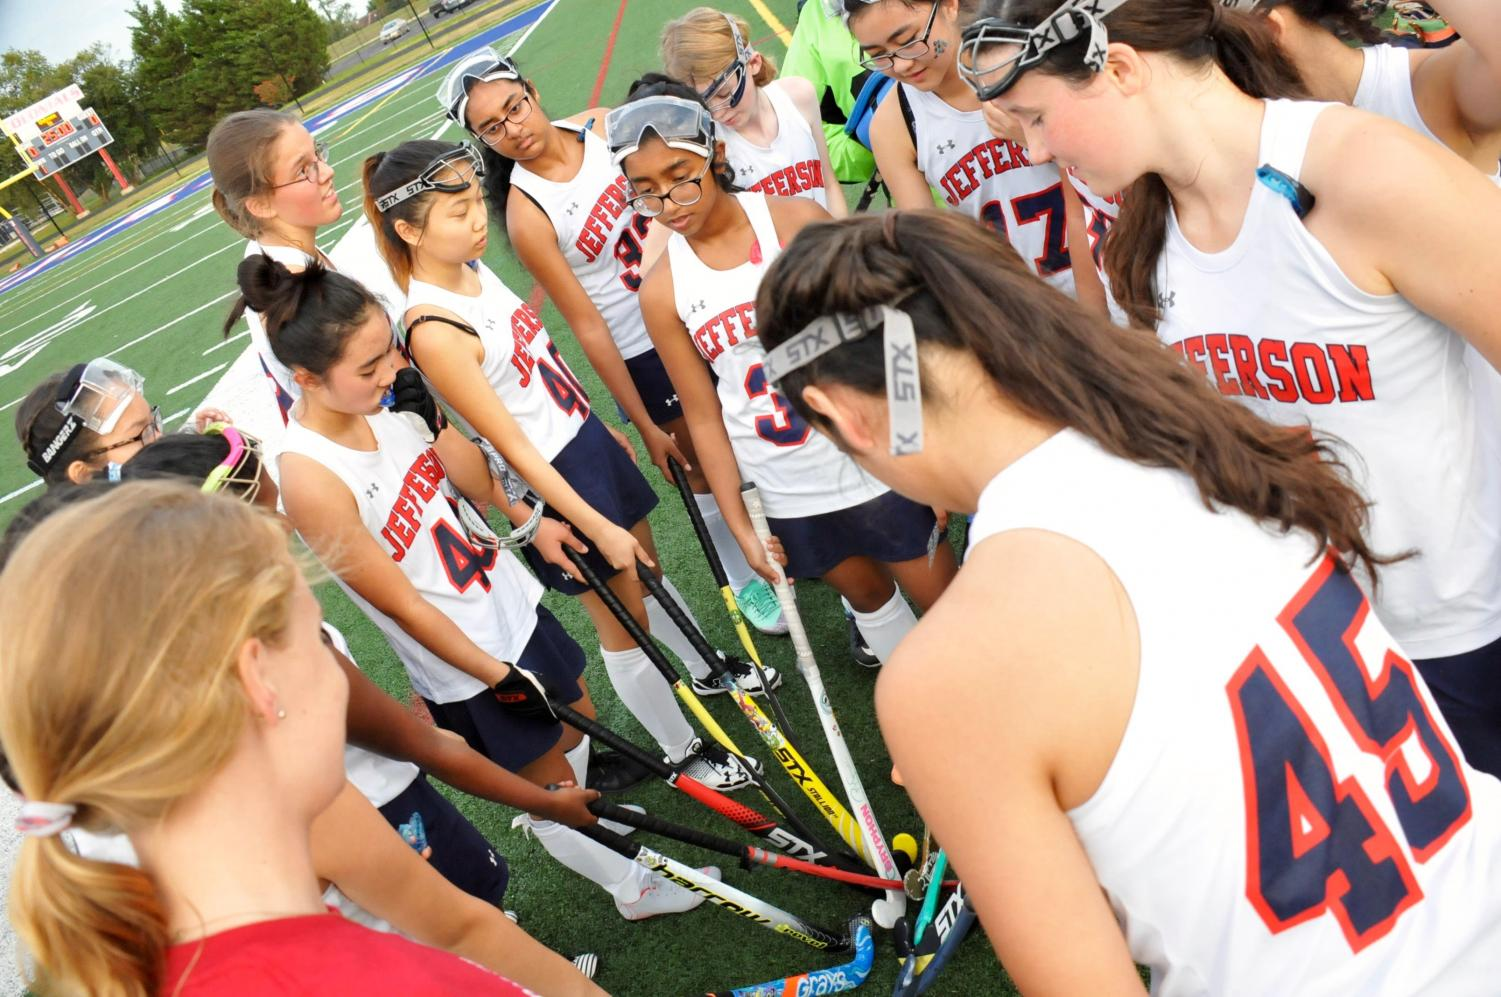 Listening intently, the JV field hockey team huddles around the coach, Allie Ivener, before a game.